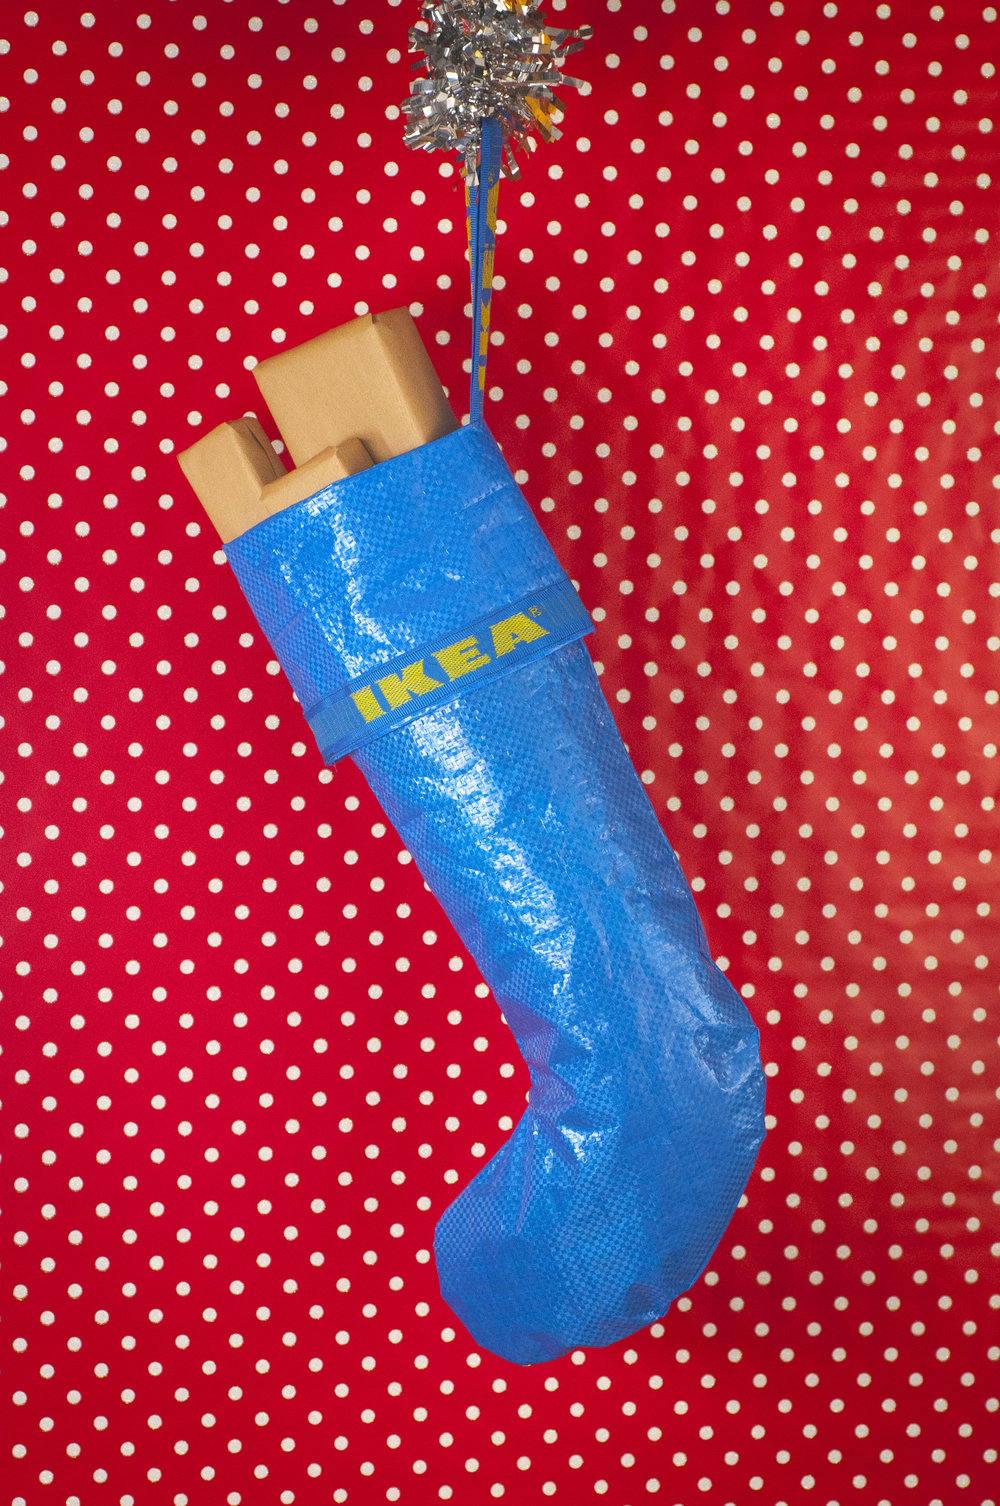 IKEA STOCKING 2.JPG